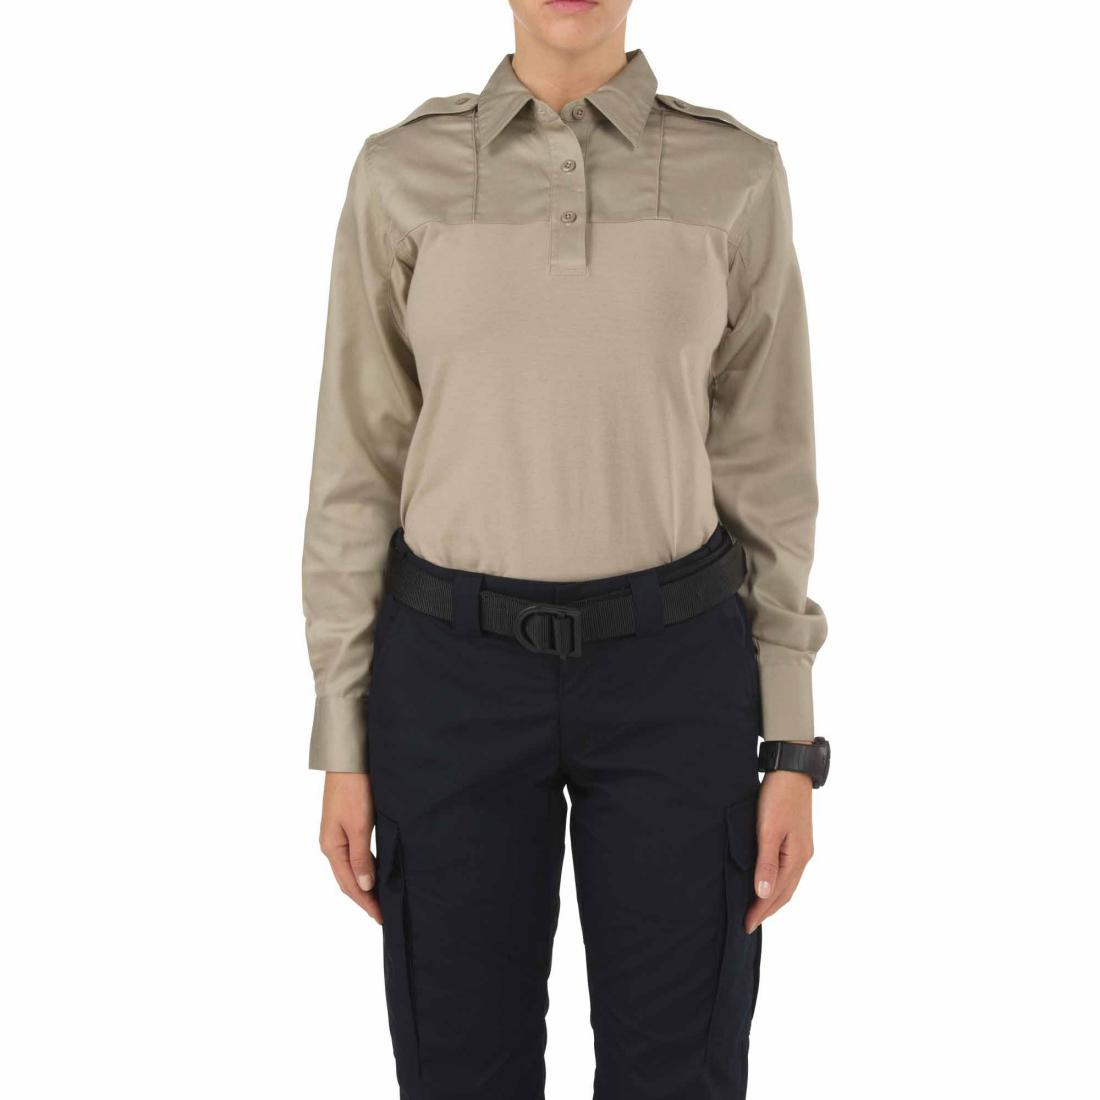 5.11 Tactical 62372 Women's Rapid PDU Long Sleeve Shirt Silver Tan